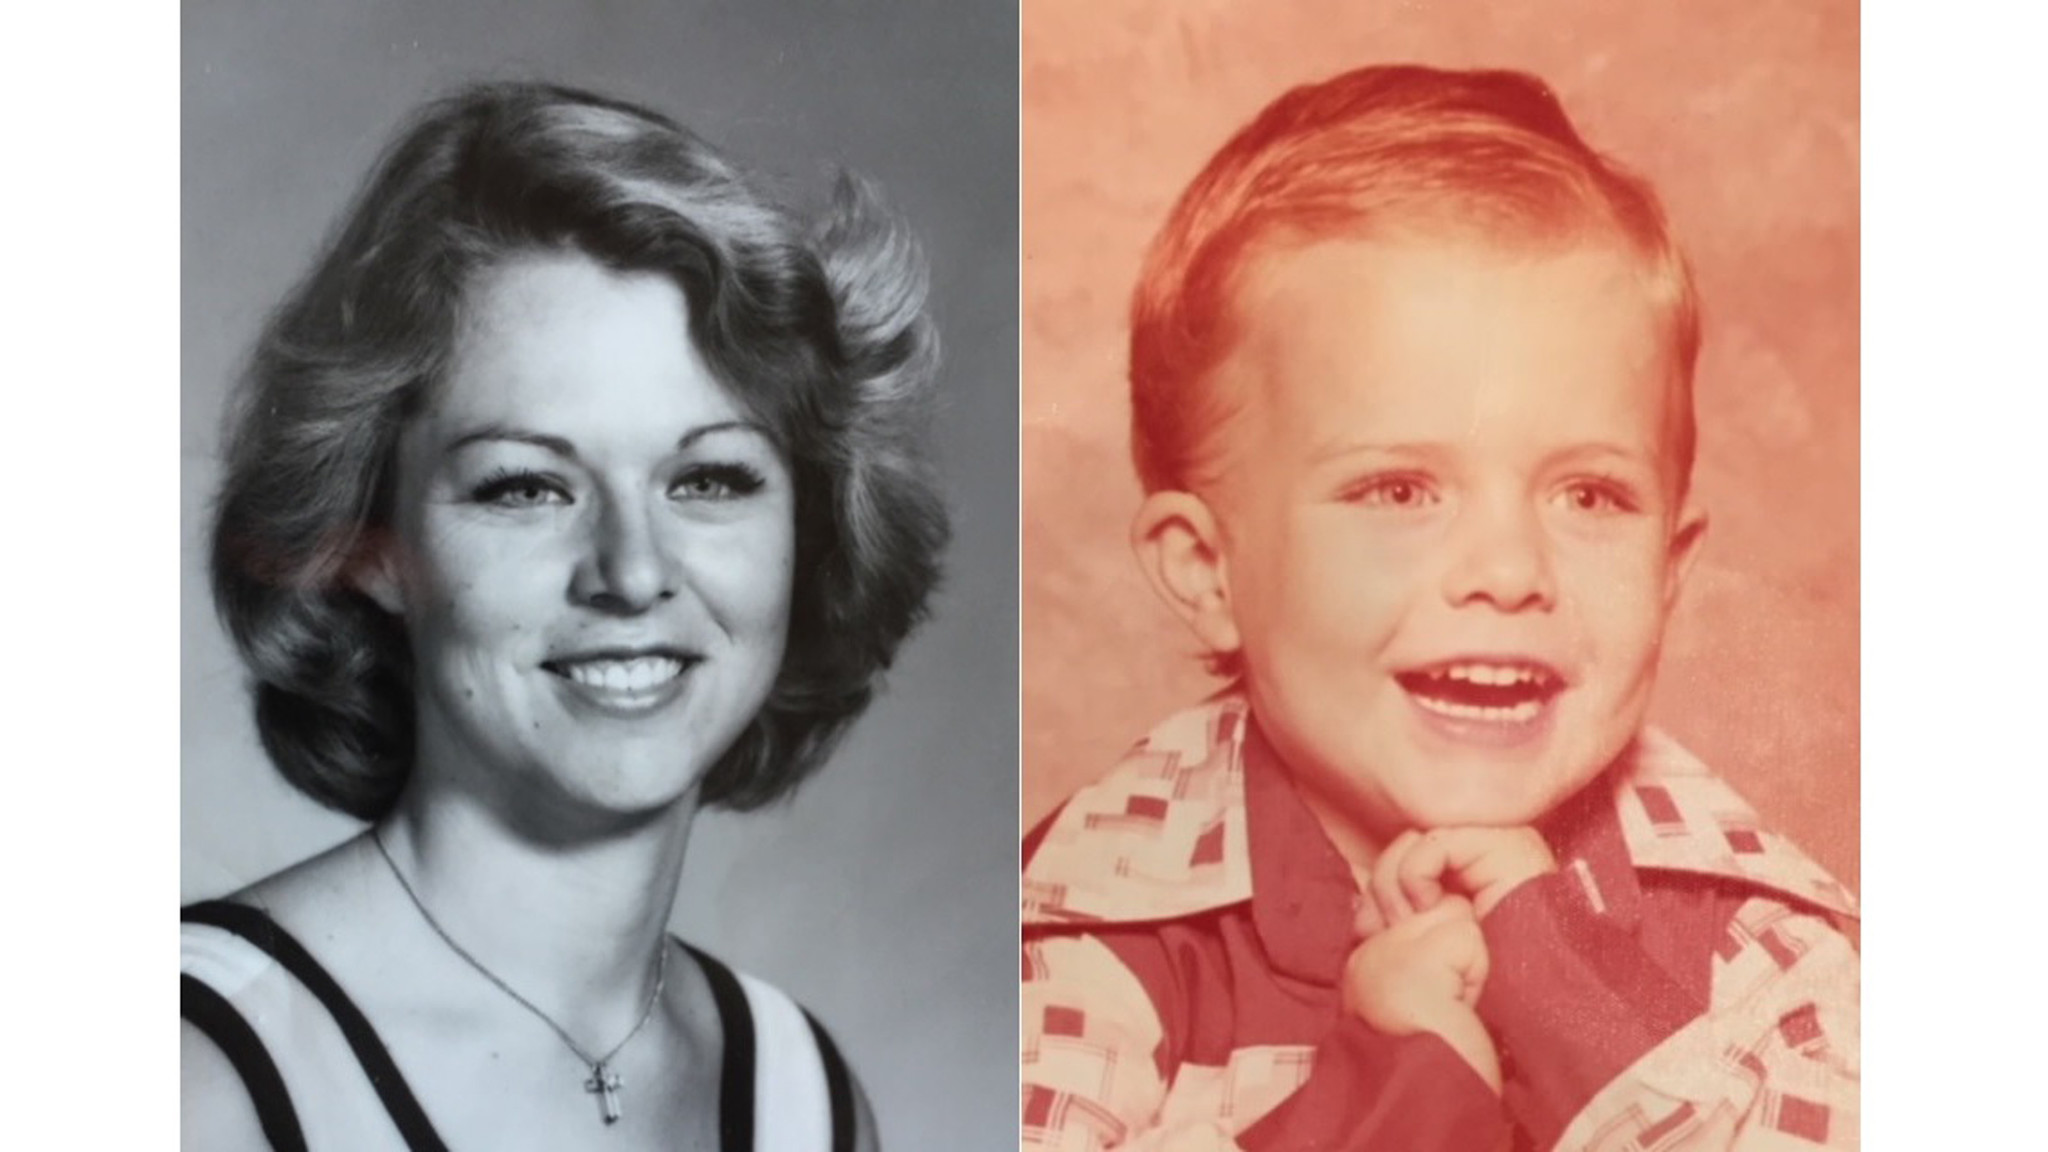 Rhonda Wicht, 24, and her 4-year-old son, Donald, were killed in 1978.